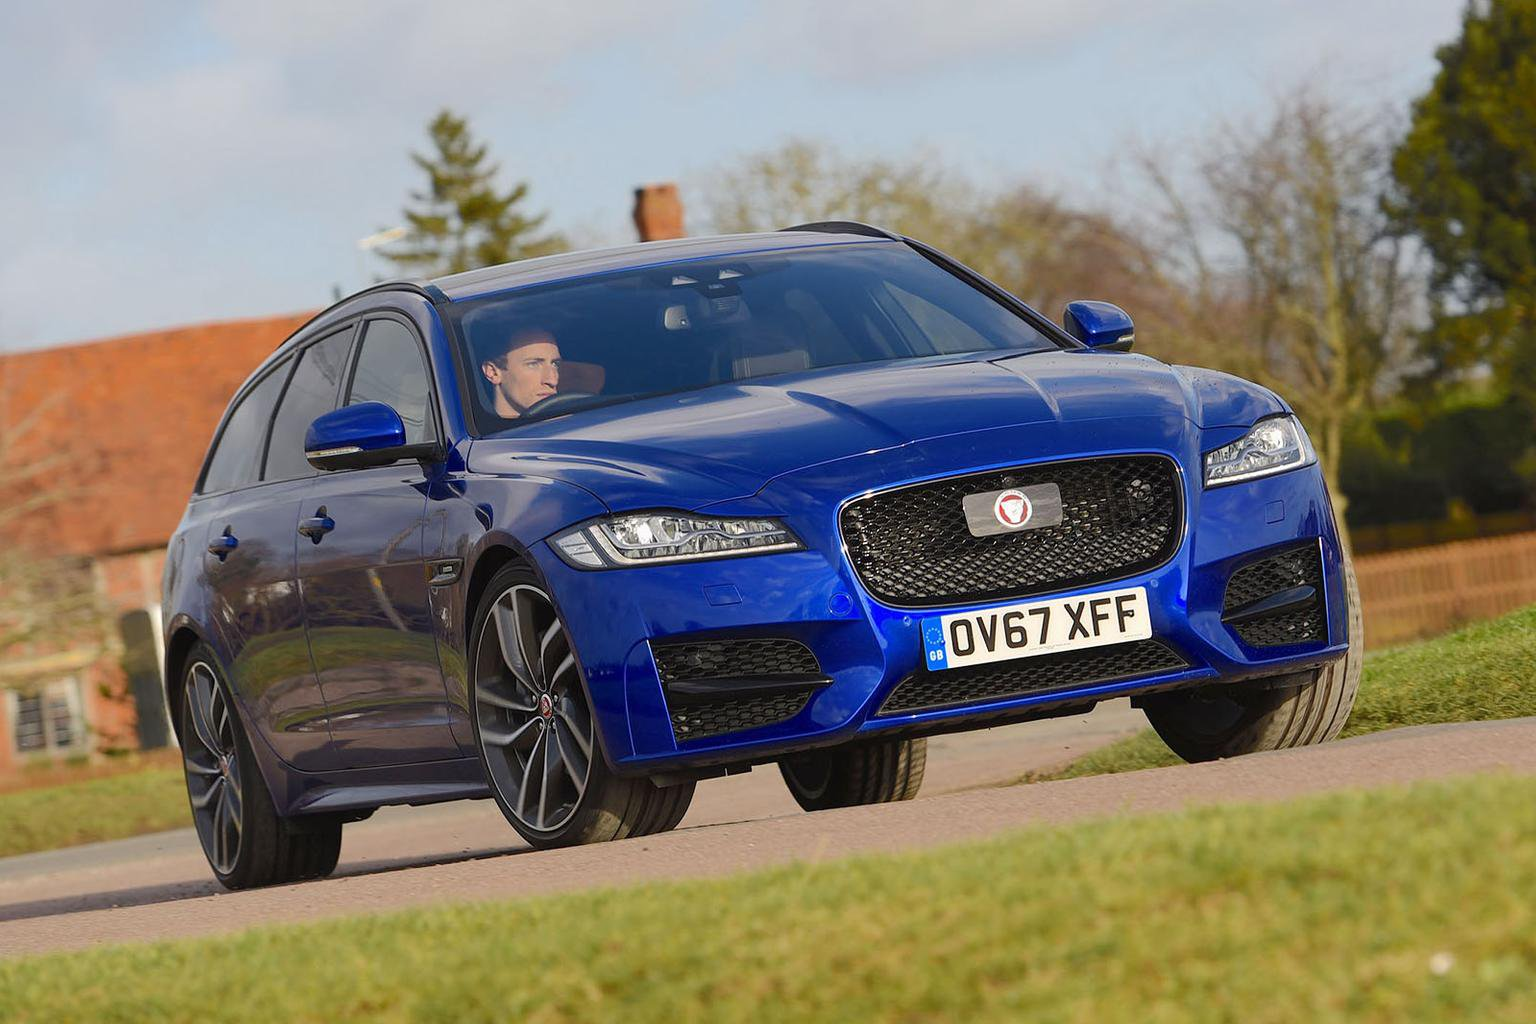 New Jaguar XF Sportbrake vs BMW 5 Series Touring